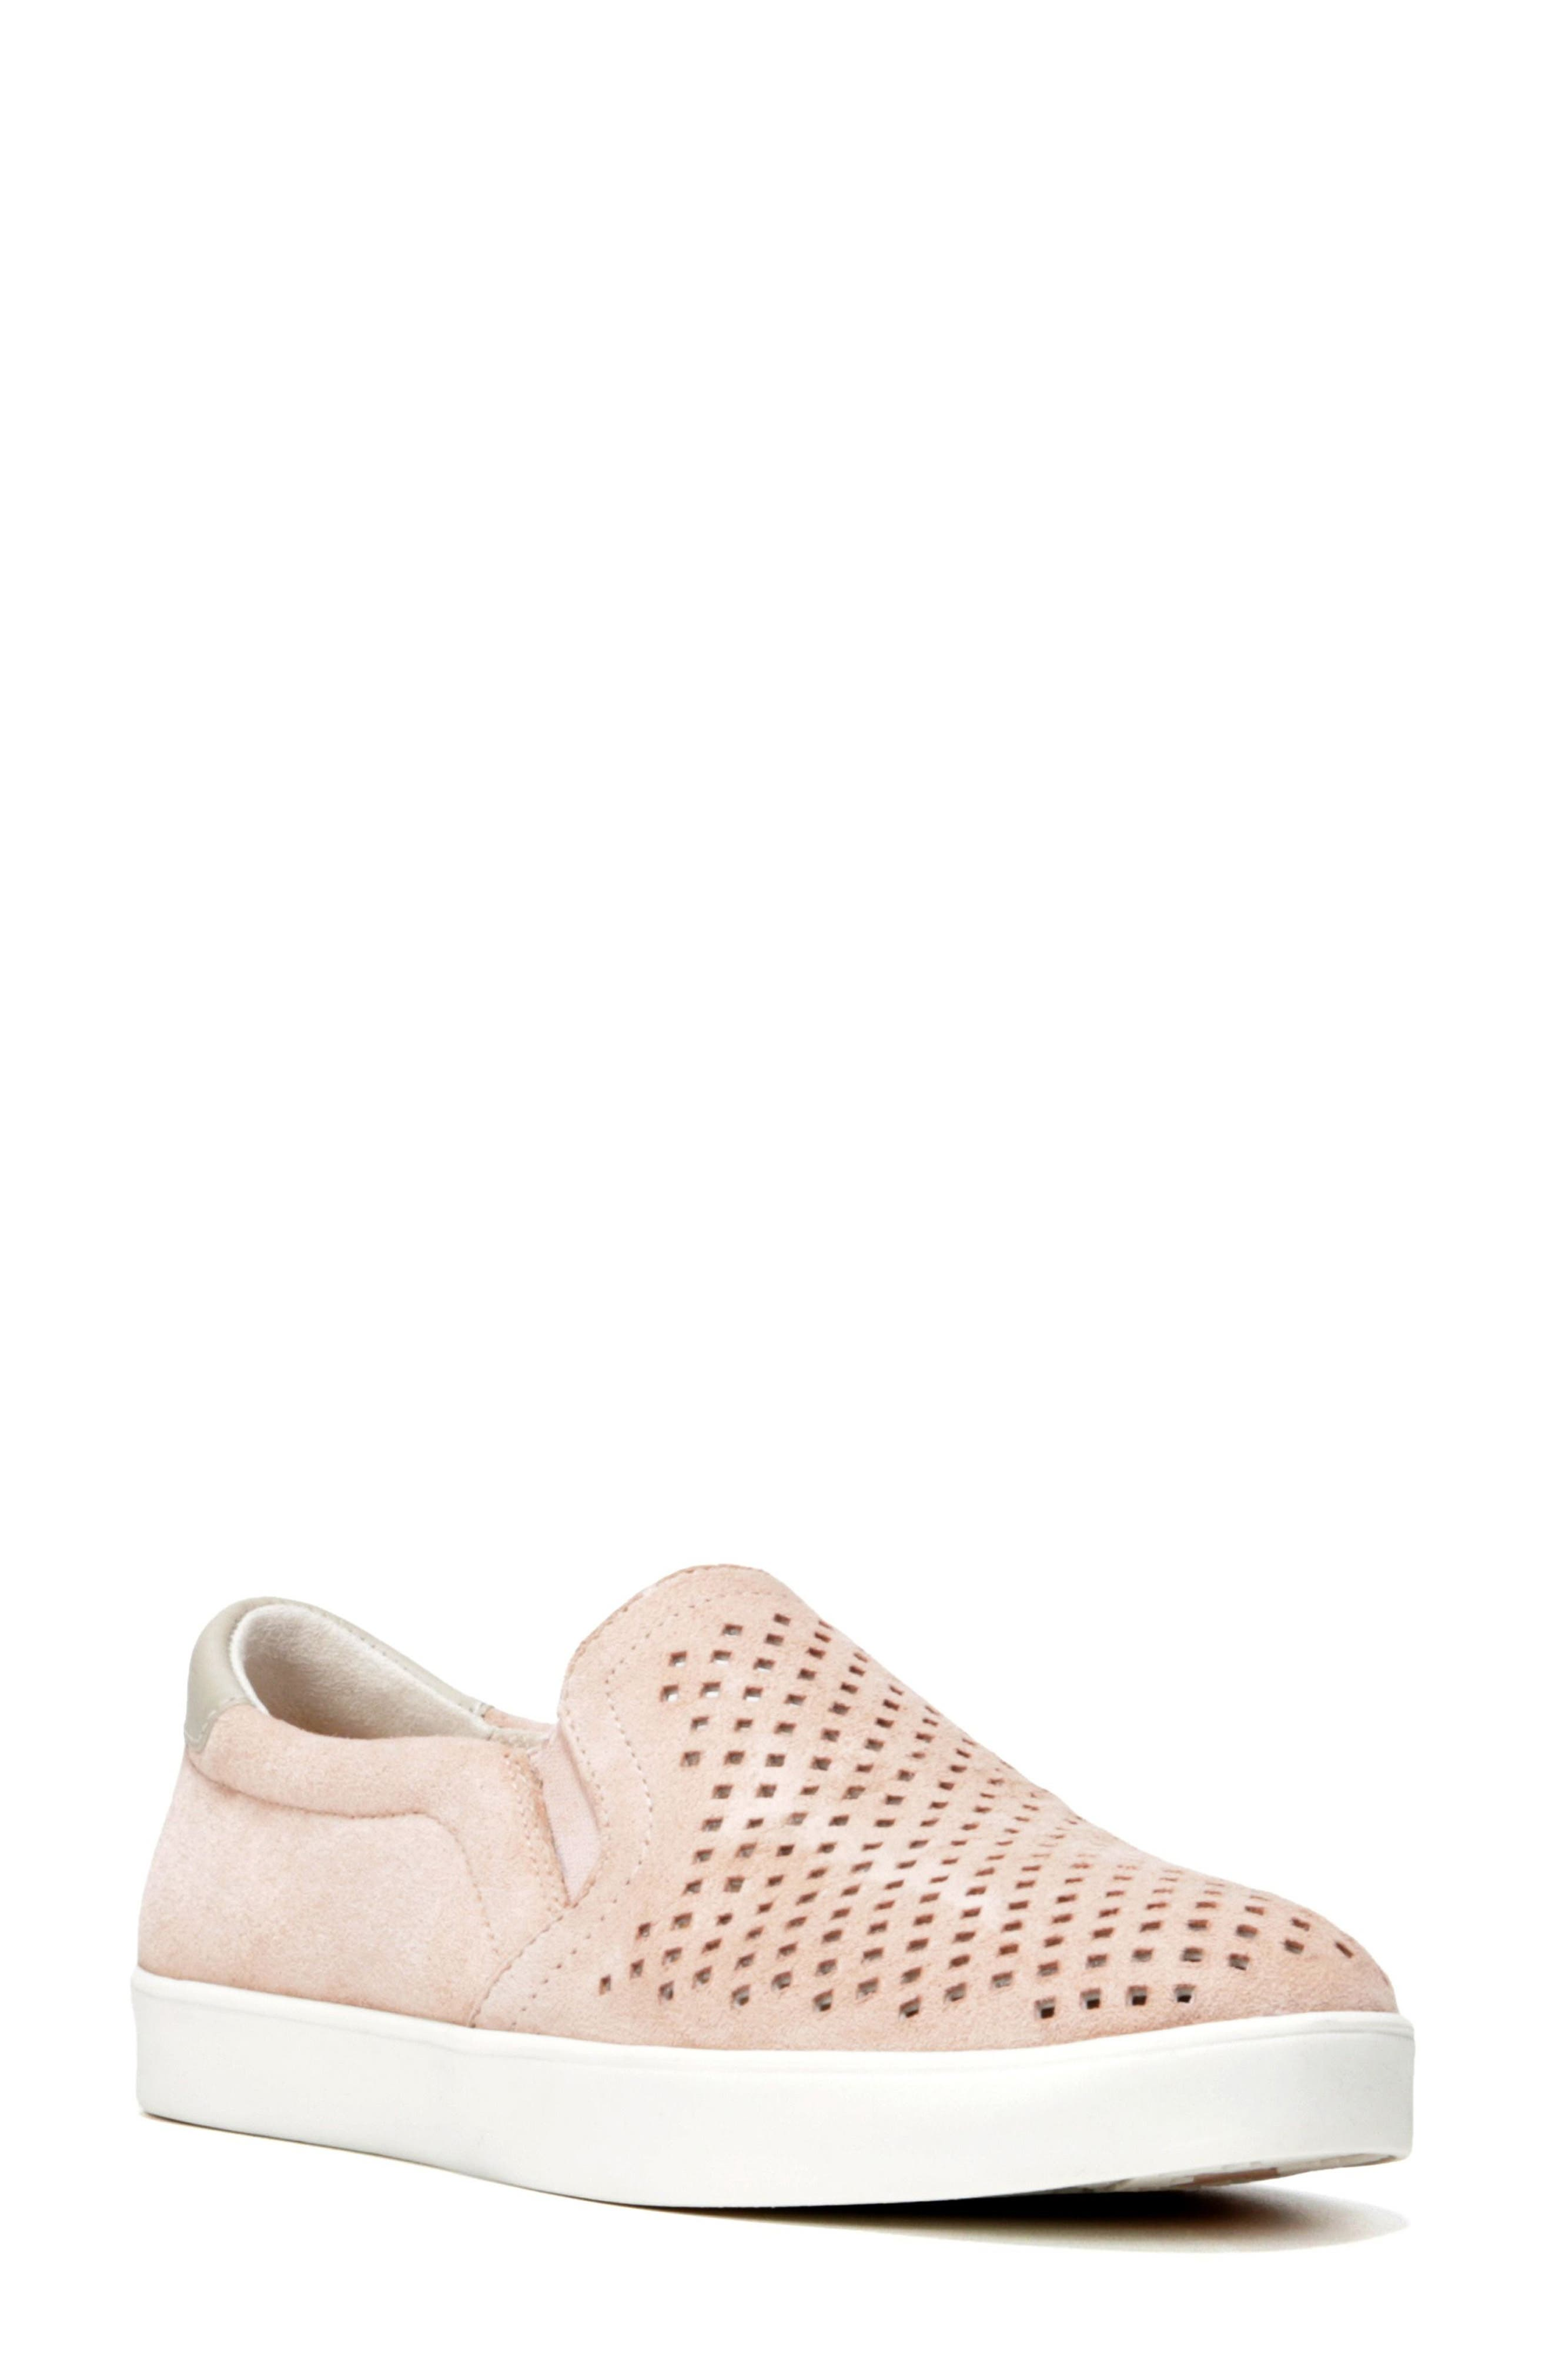 Original Collection 'Scout' Slip On Sneaker,                             Main thumbnail 1, color,                             Seashell Pink Suede